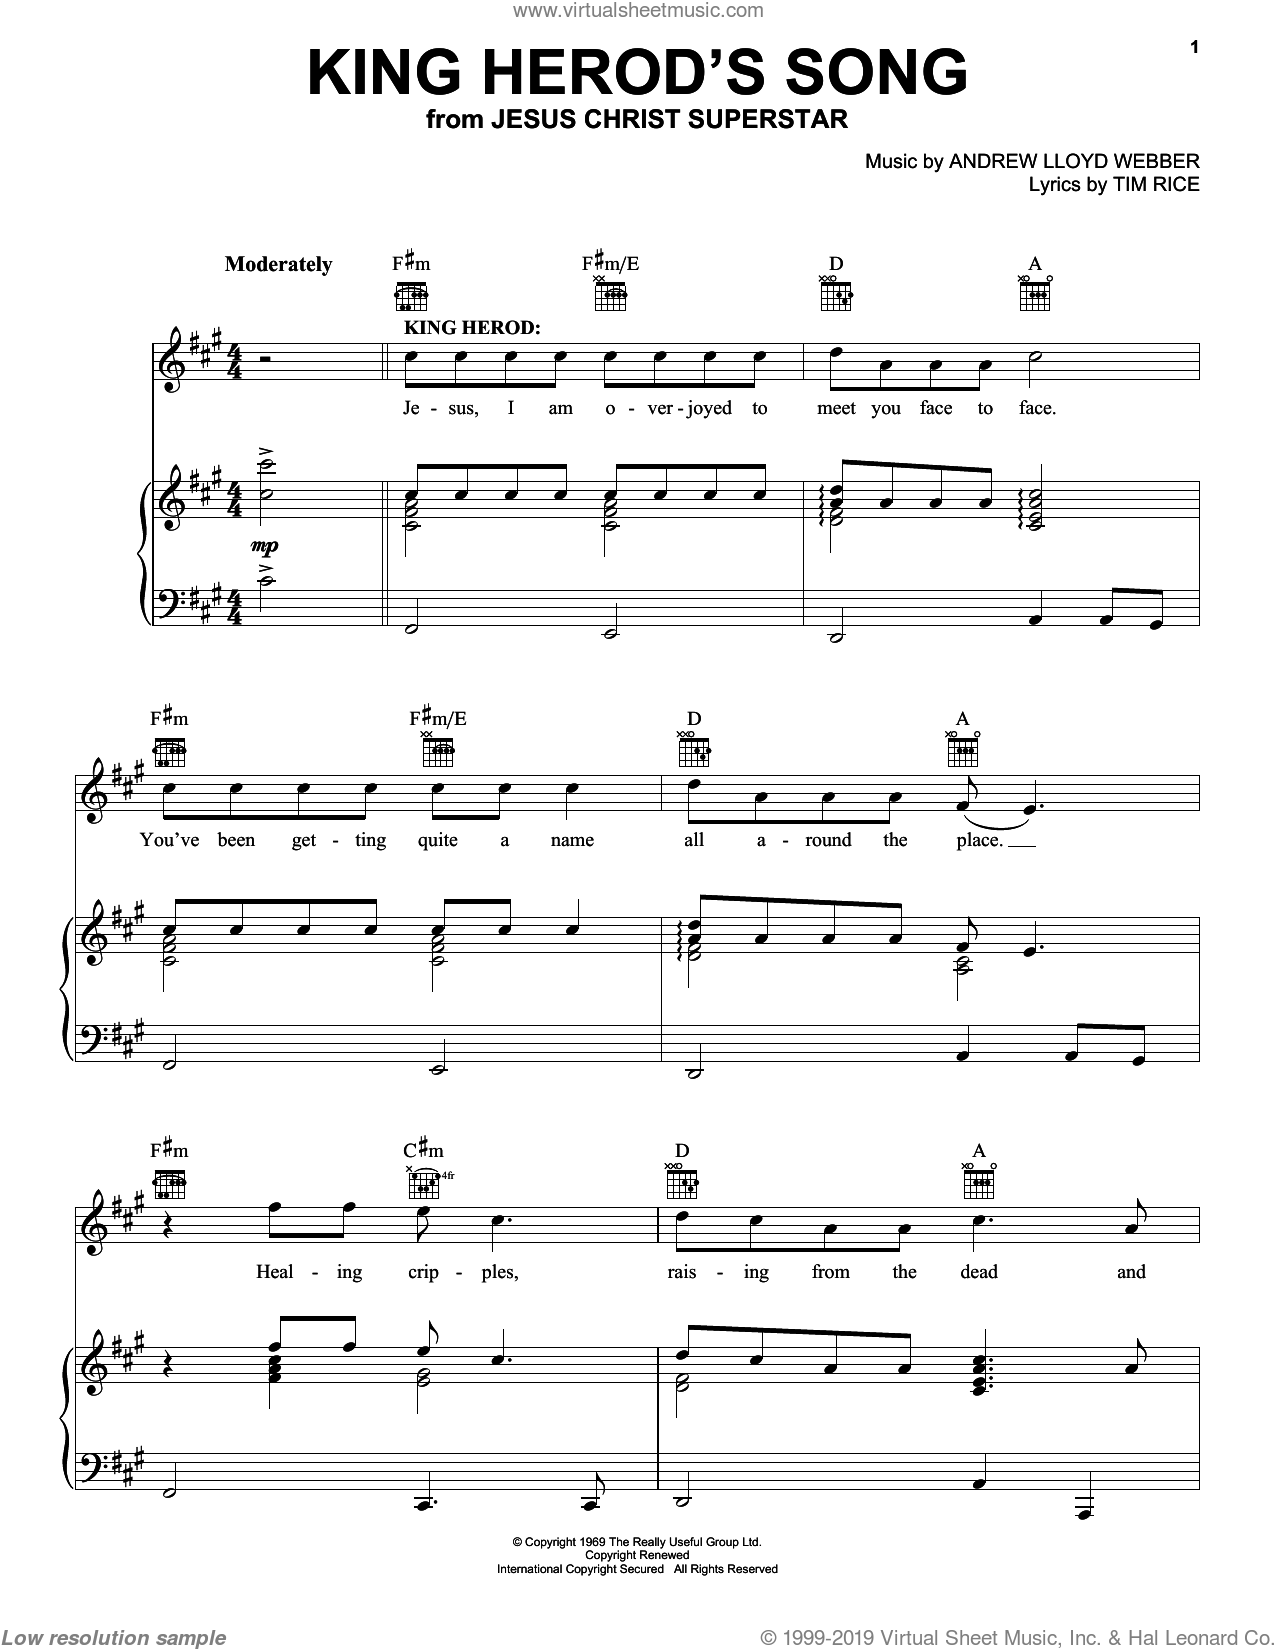 King Herod's Song sheet music for voice, piano or guitar by Andrew Lloyd Webber and Tim Rice, intermediate skill level